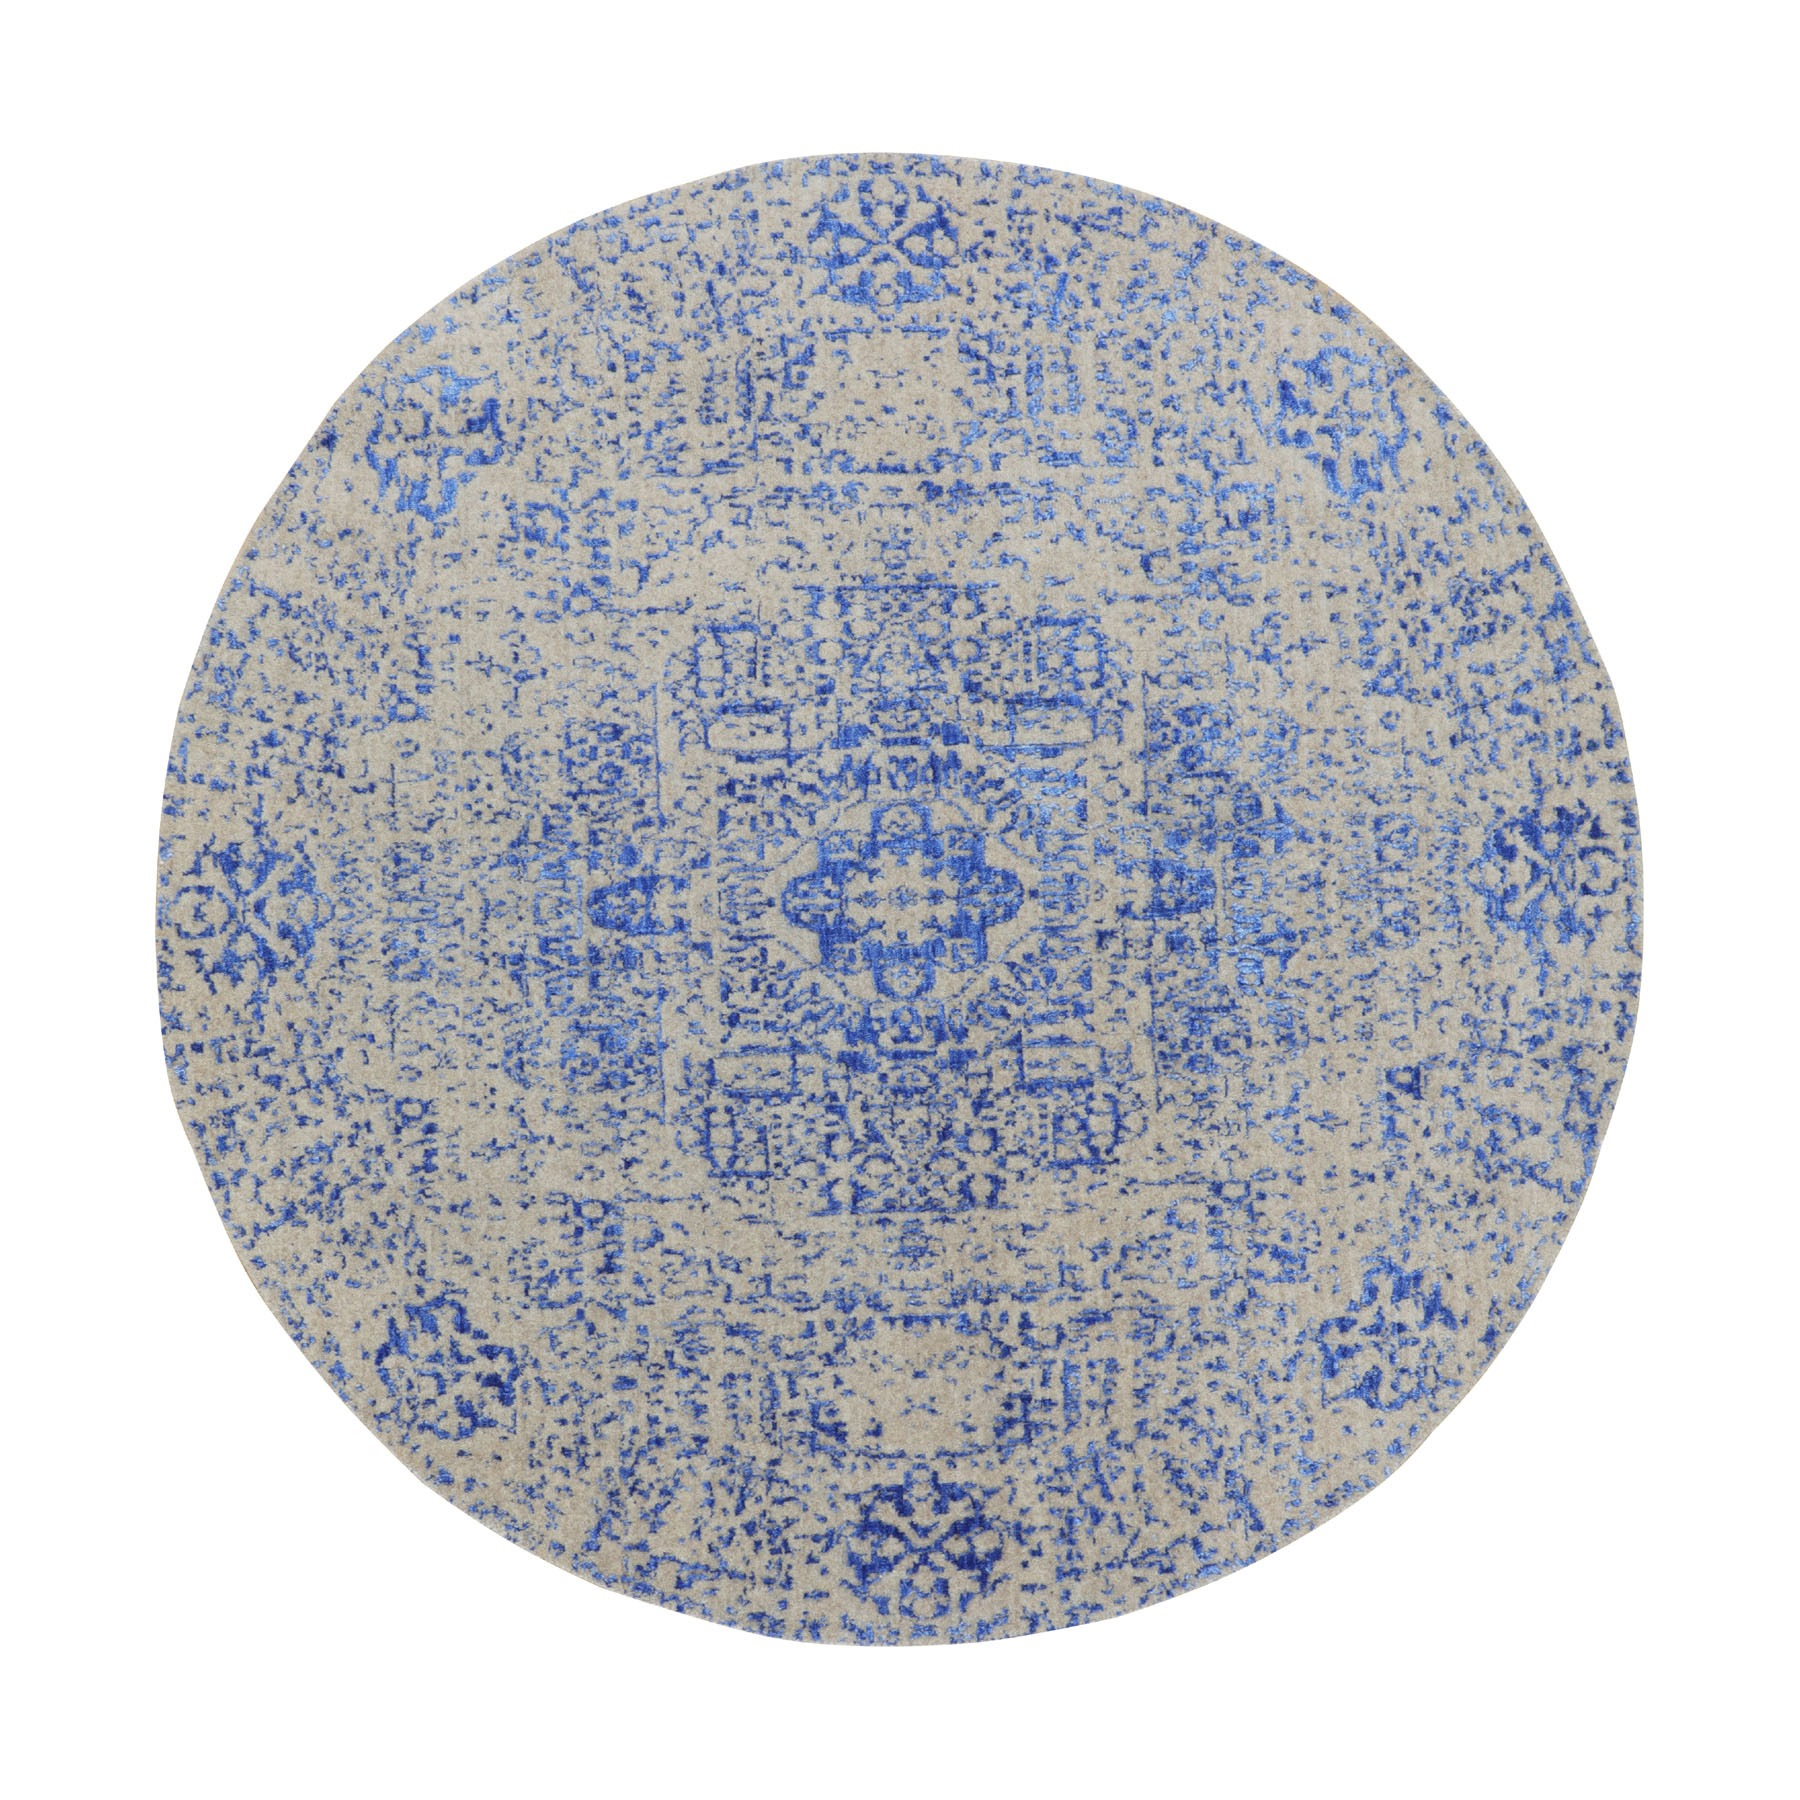 Intricate Collection Hand Loomed Blue Rug No: 1116246